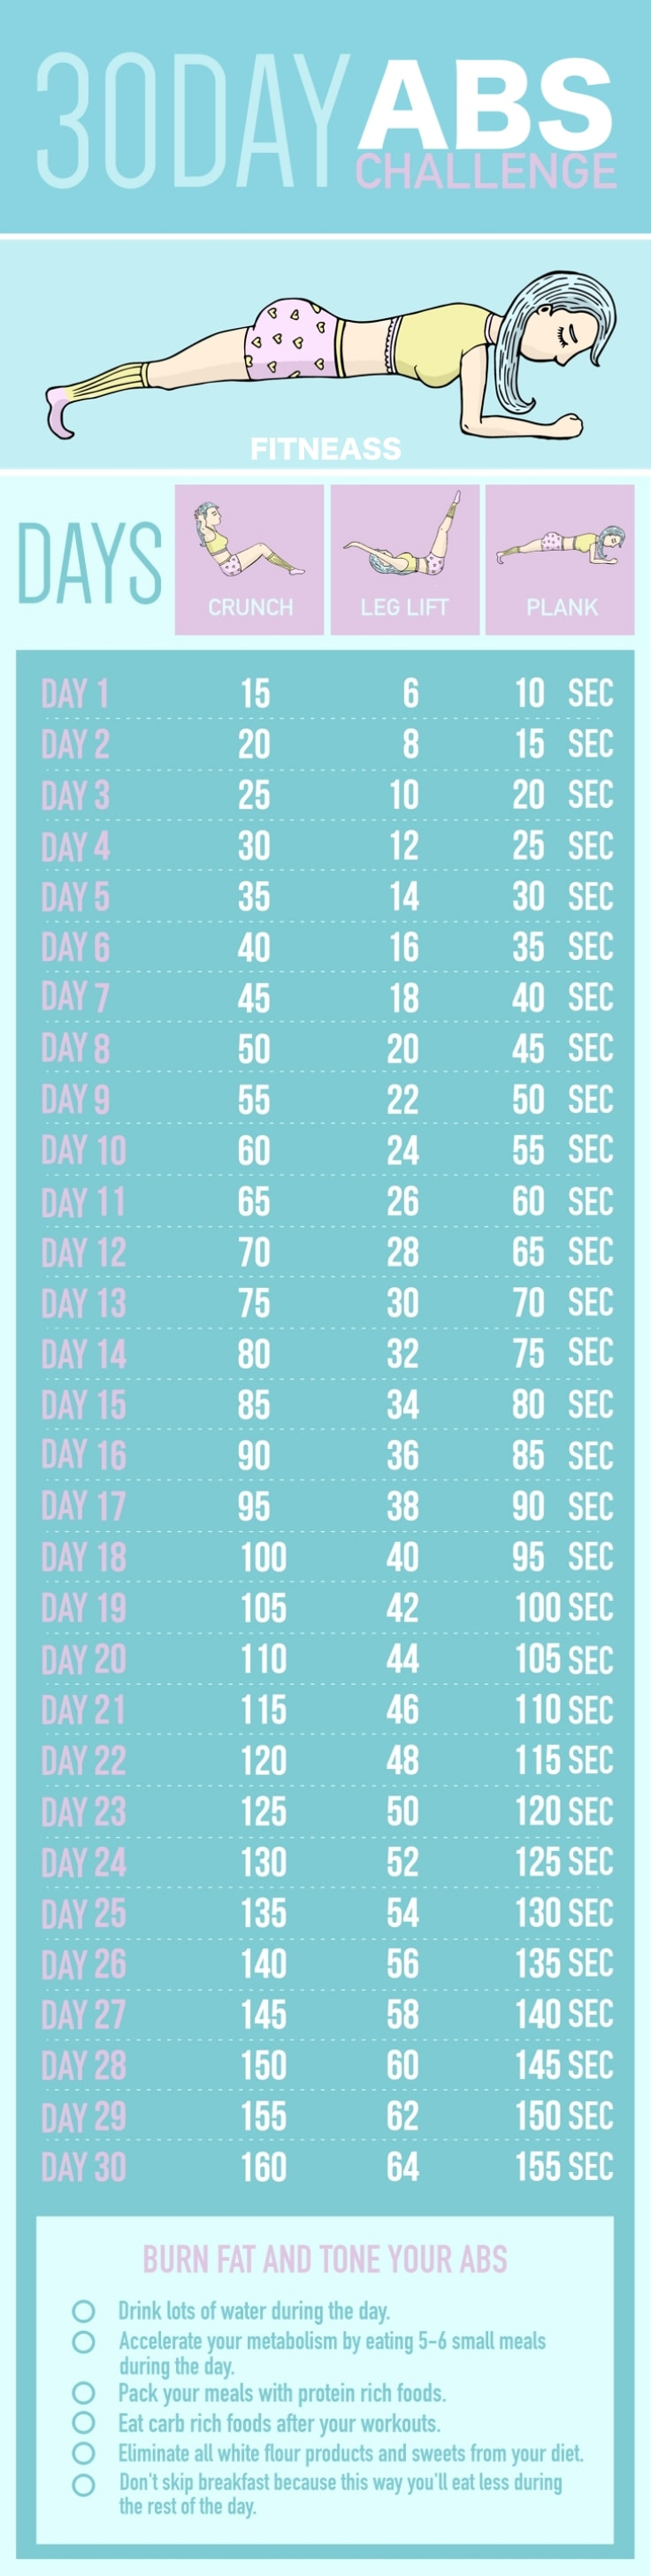 30-Day Abs Challenge by Fitneass